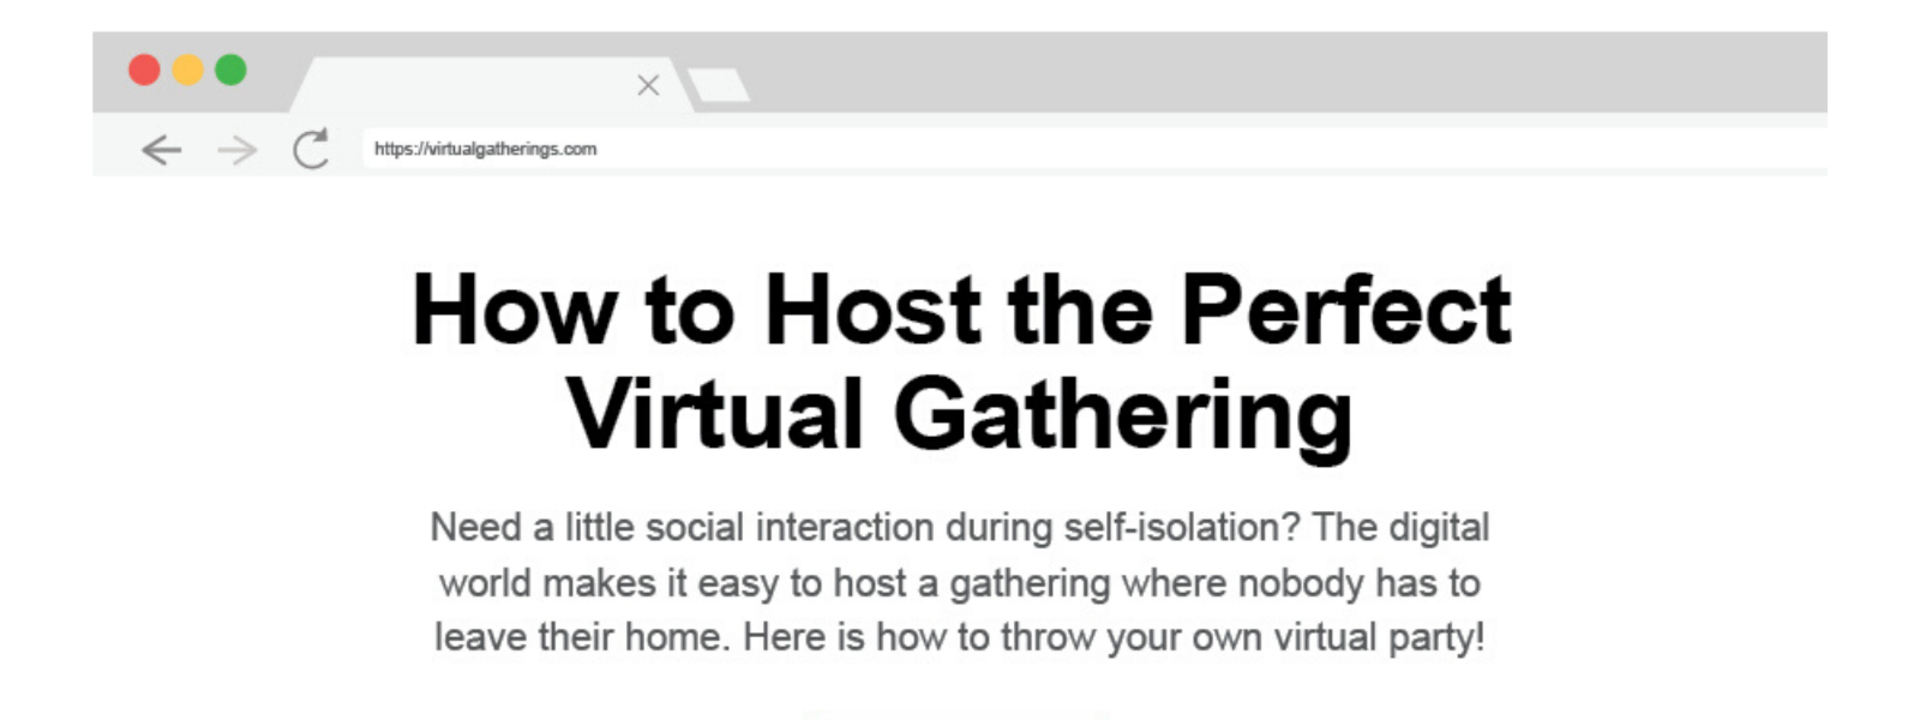 How to Host the Perfect Virtual Gathering